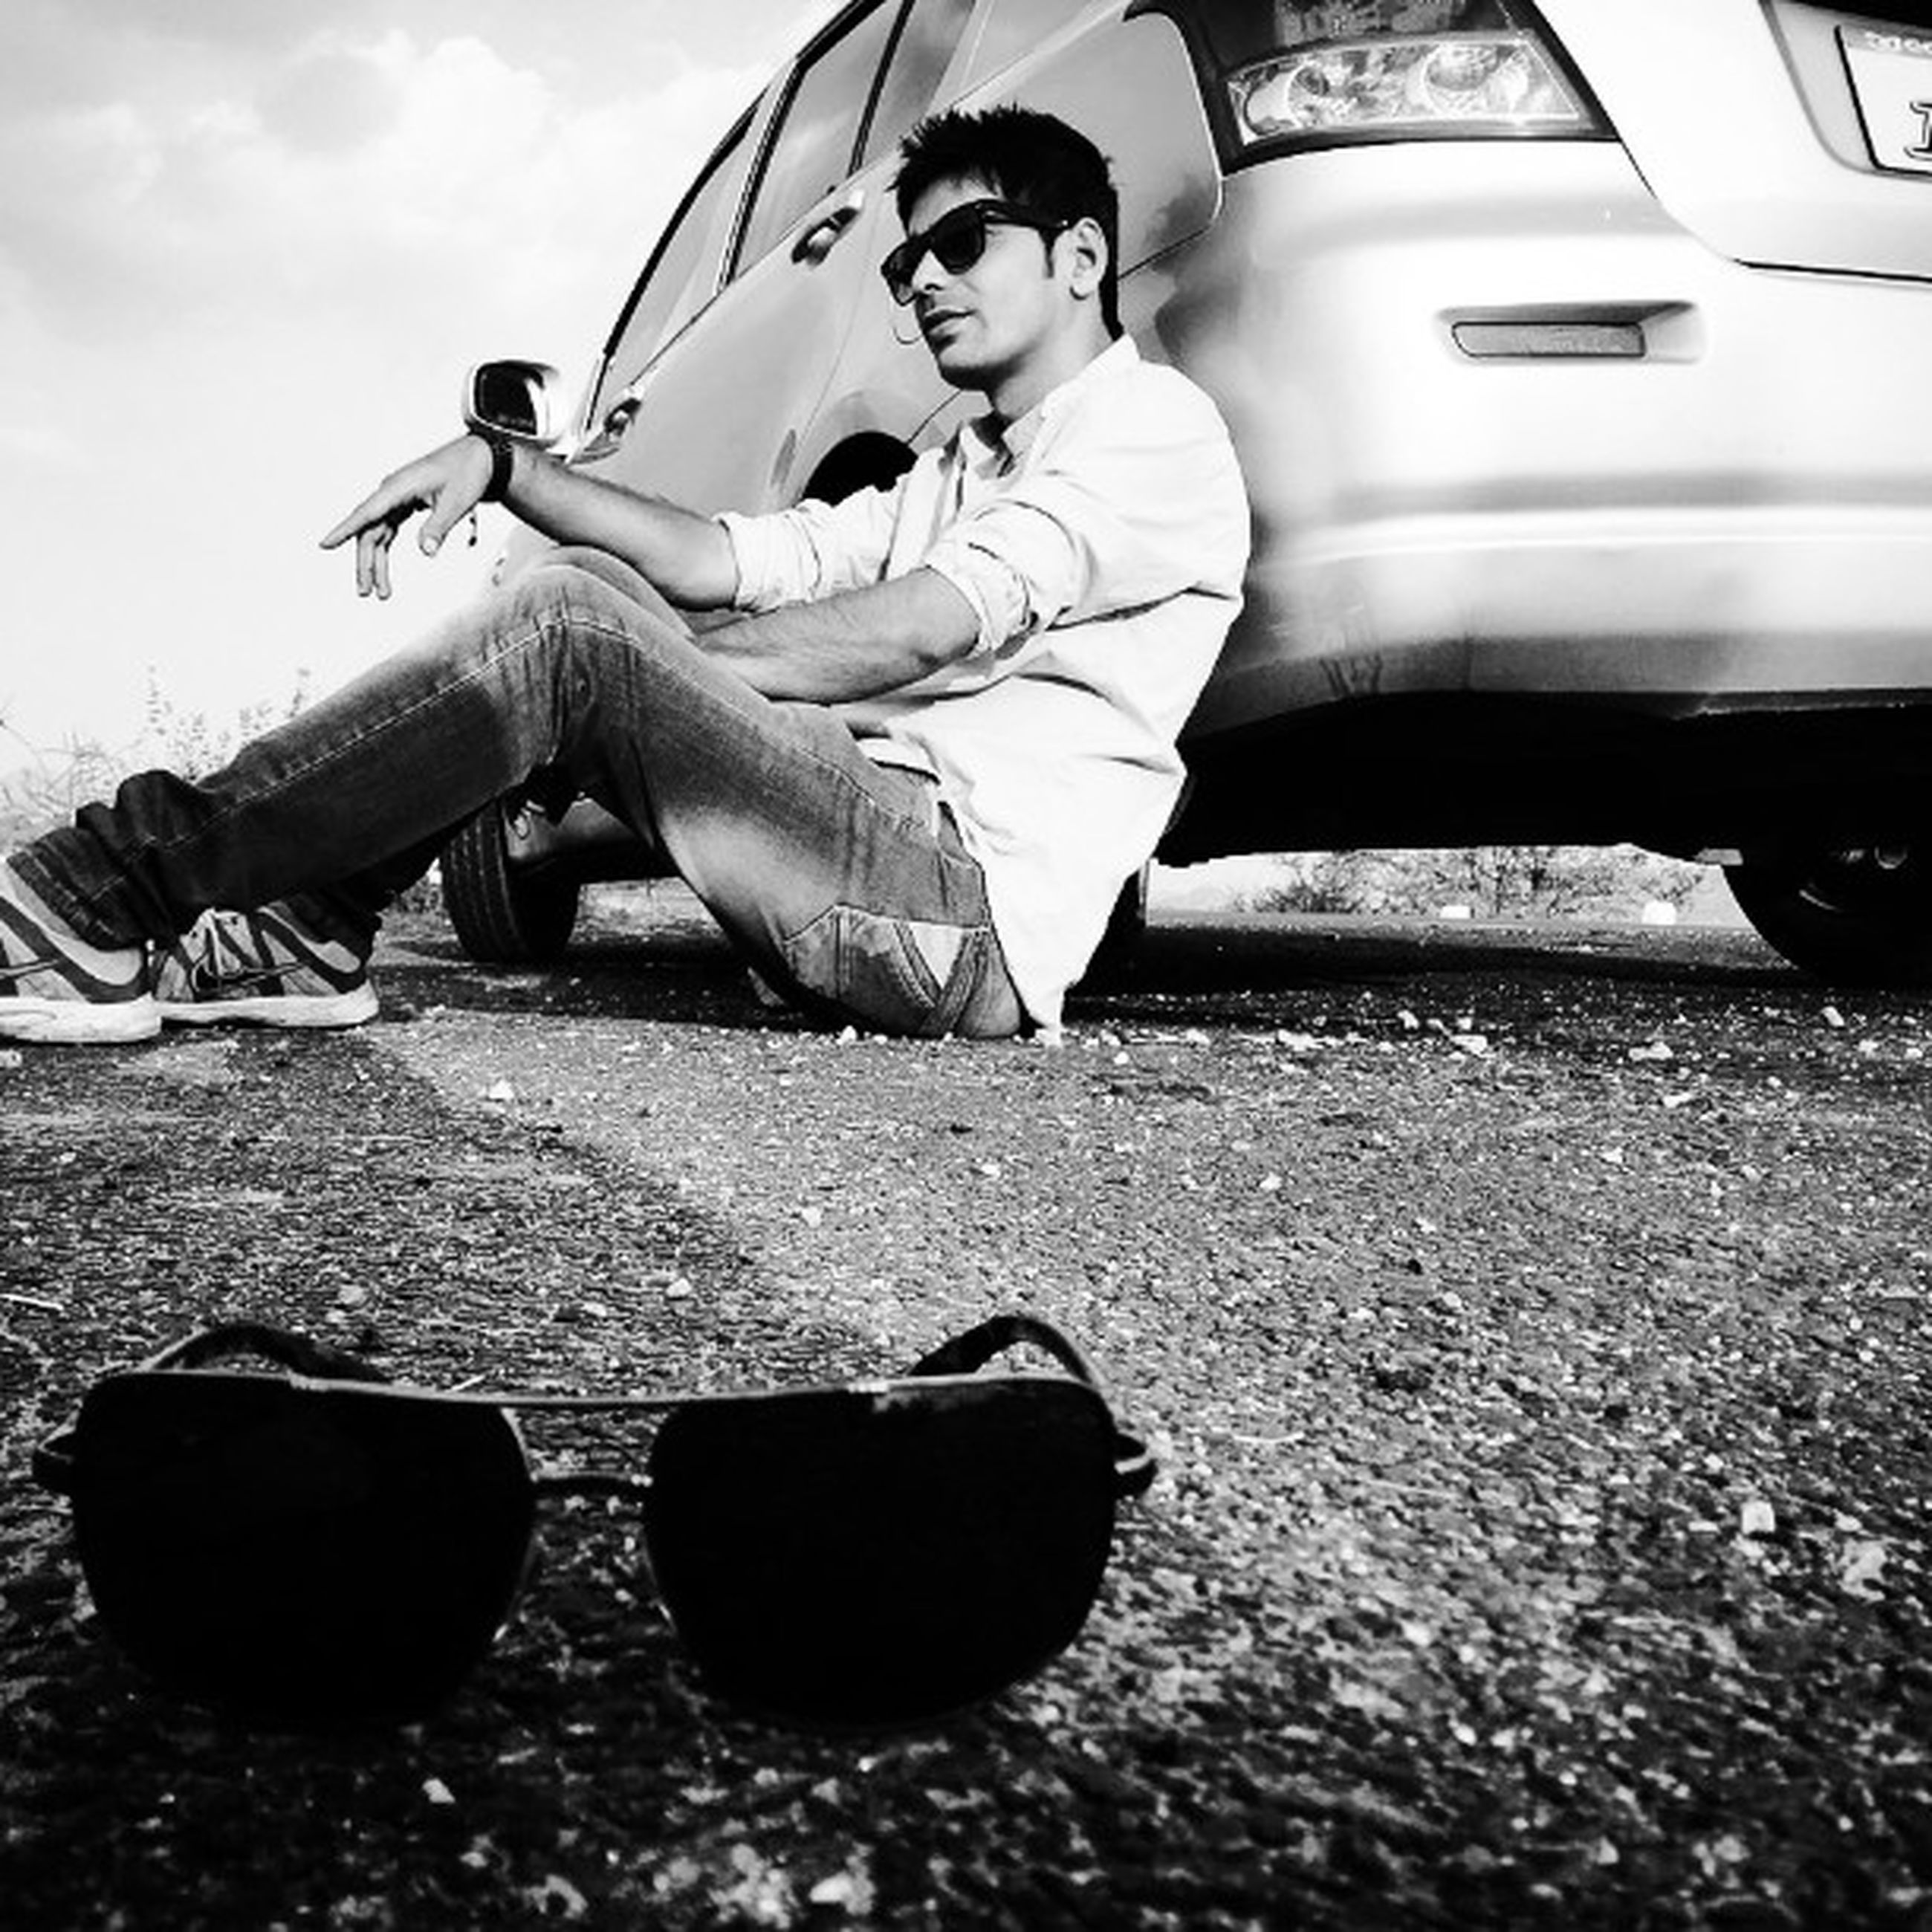 transportation, mode of transport, land vehicle, car, full length, lifestyles, travel, sky, leisure activity, men, day, street, casual clothing, outdoors, human representation, sitting, sunlight, low angle view